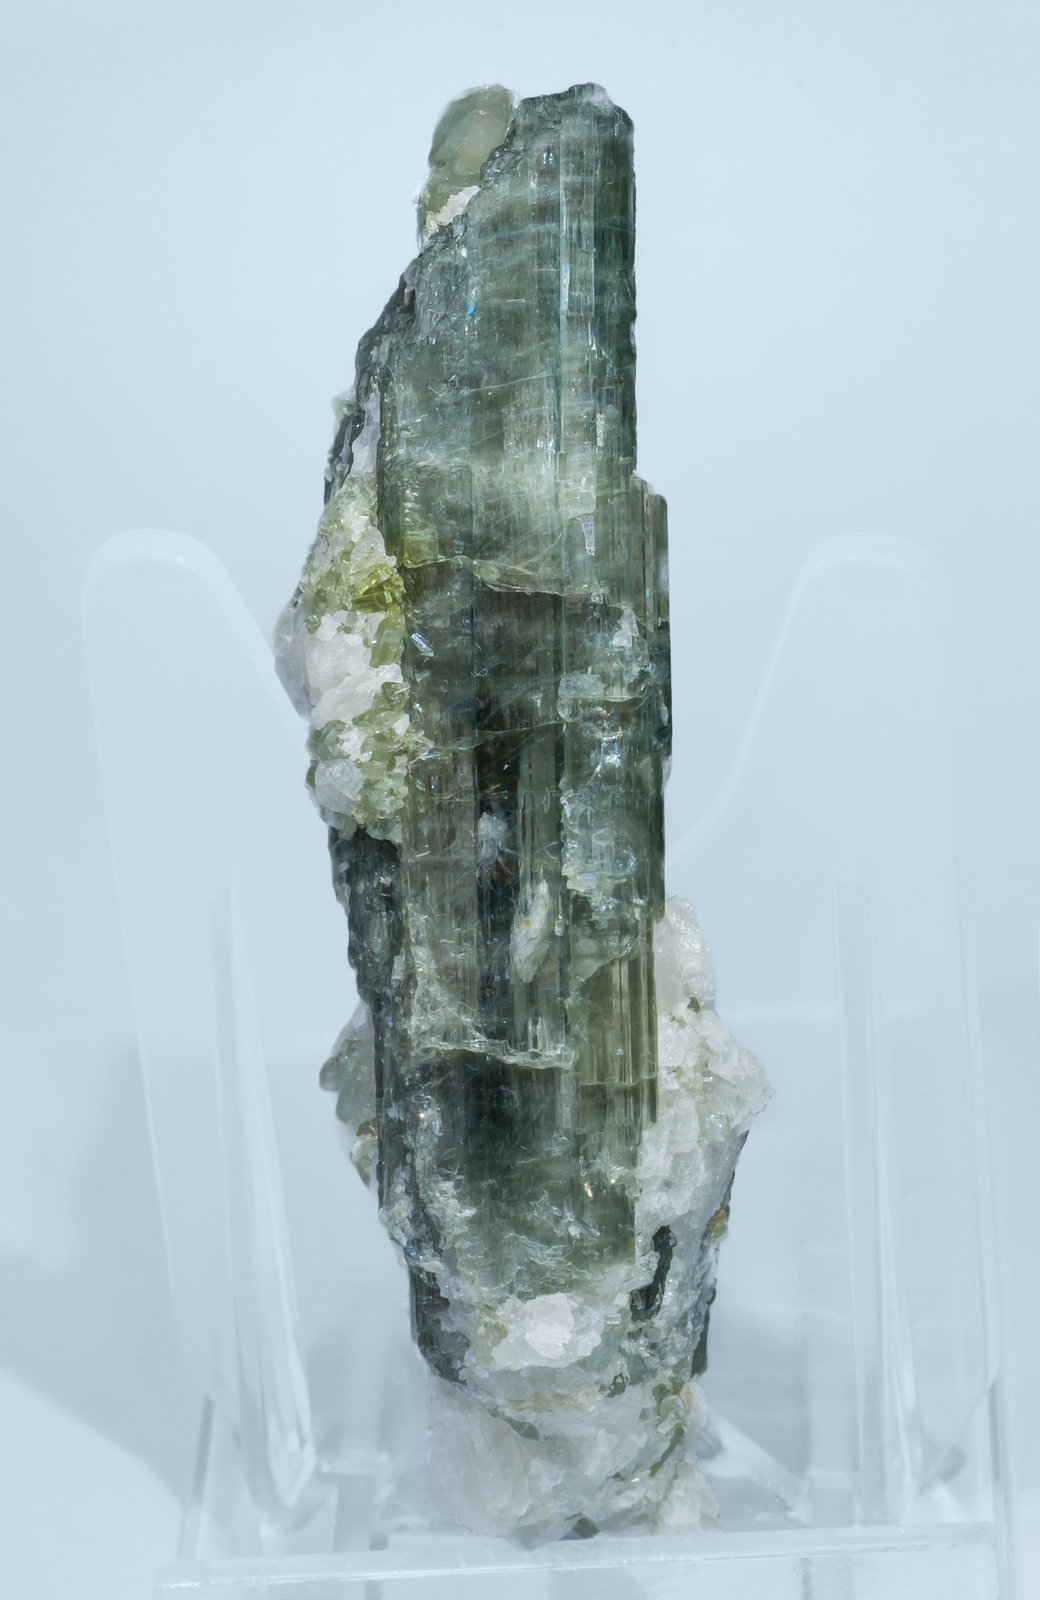 specimens/s_imagesAL2/Tremolite-TV46AL2f.jpg